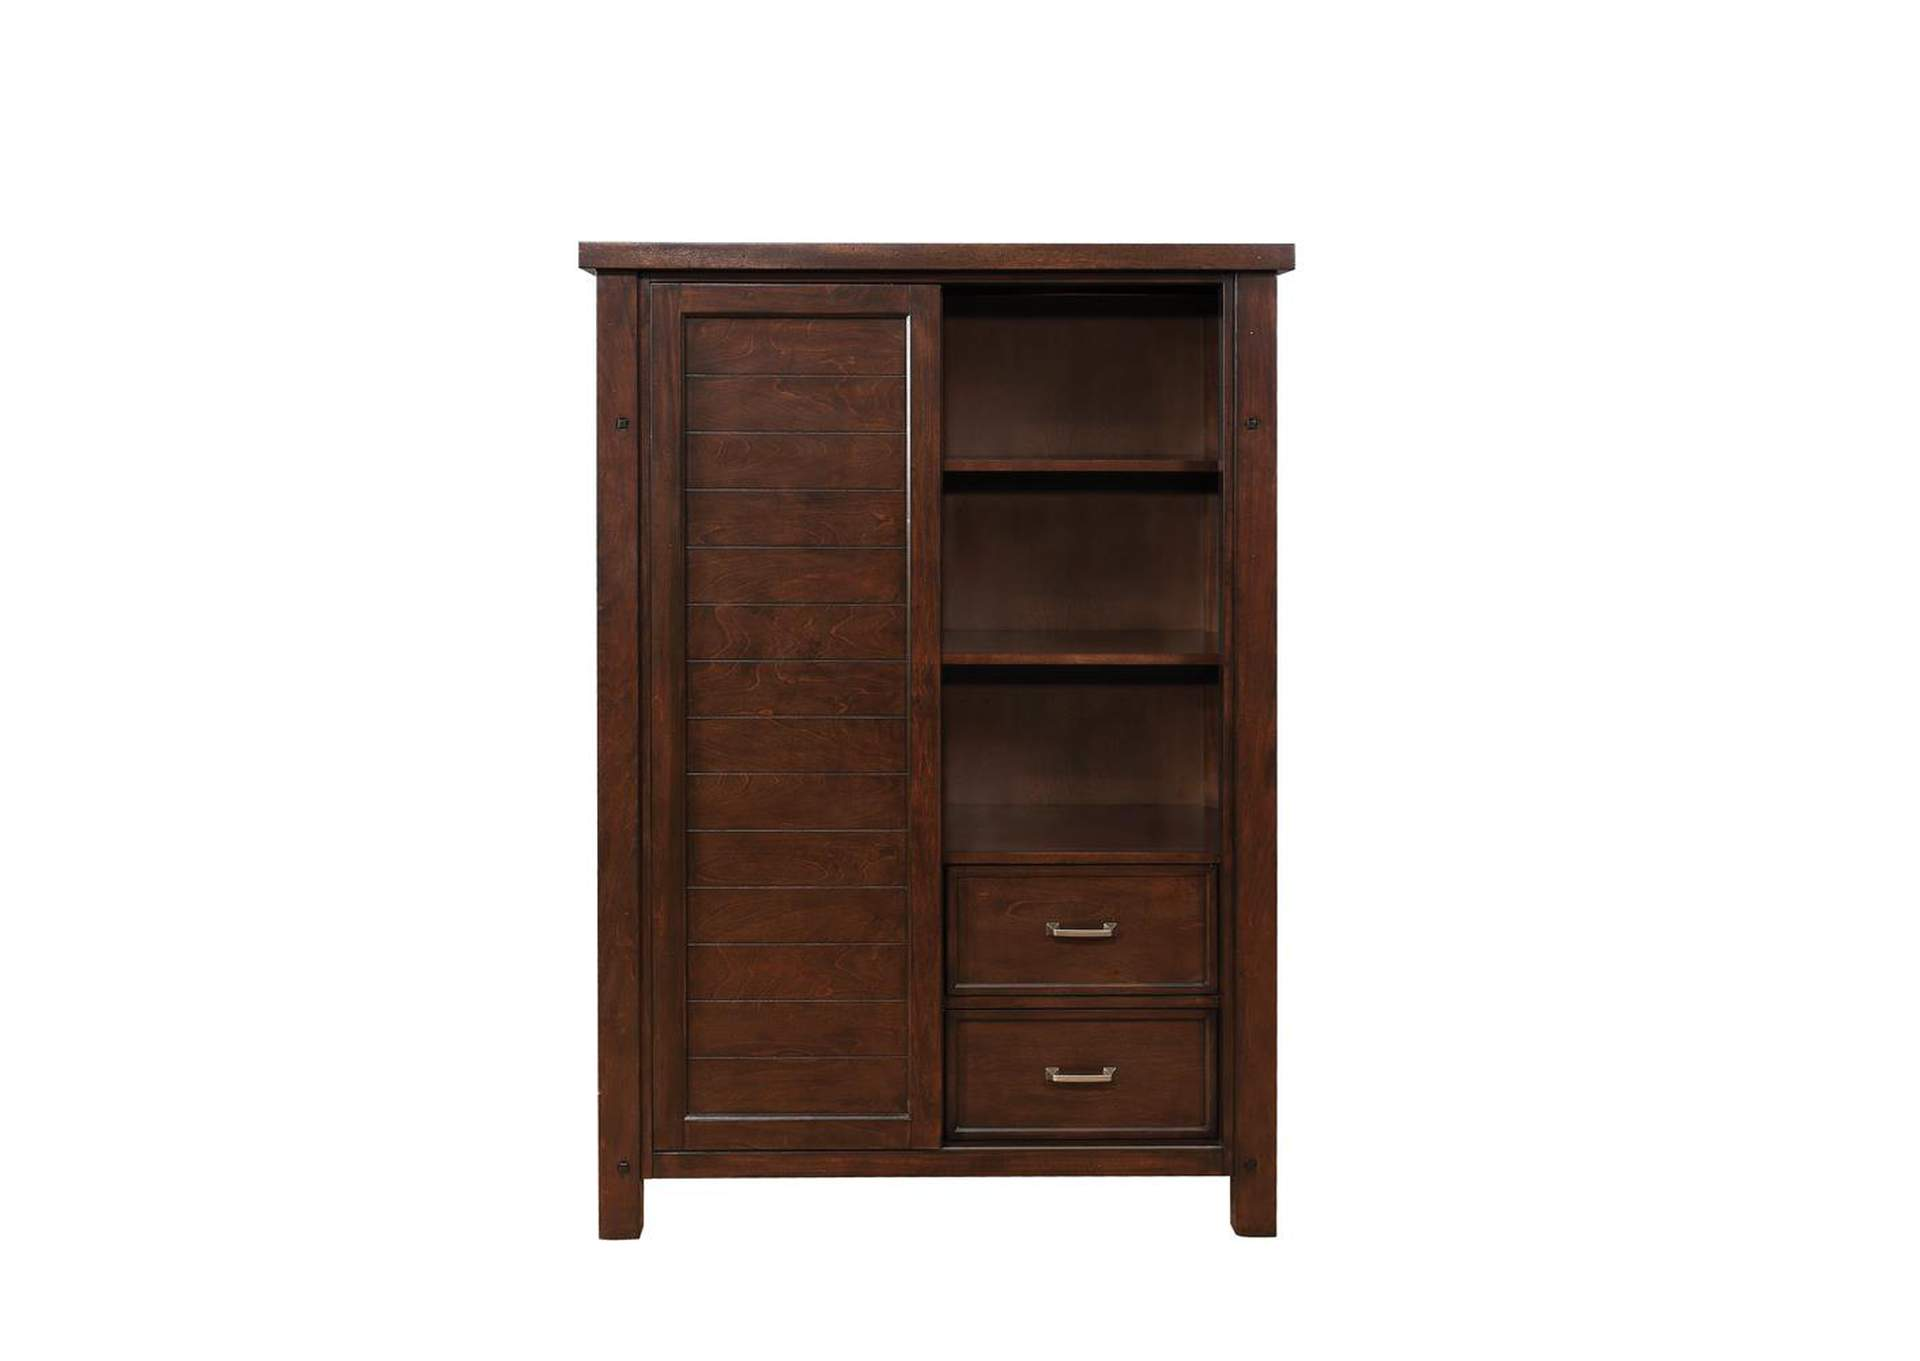 Barstow 8-Drawer Door Chest Pinot Noir,Coaster Furniture